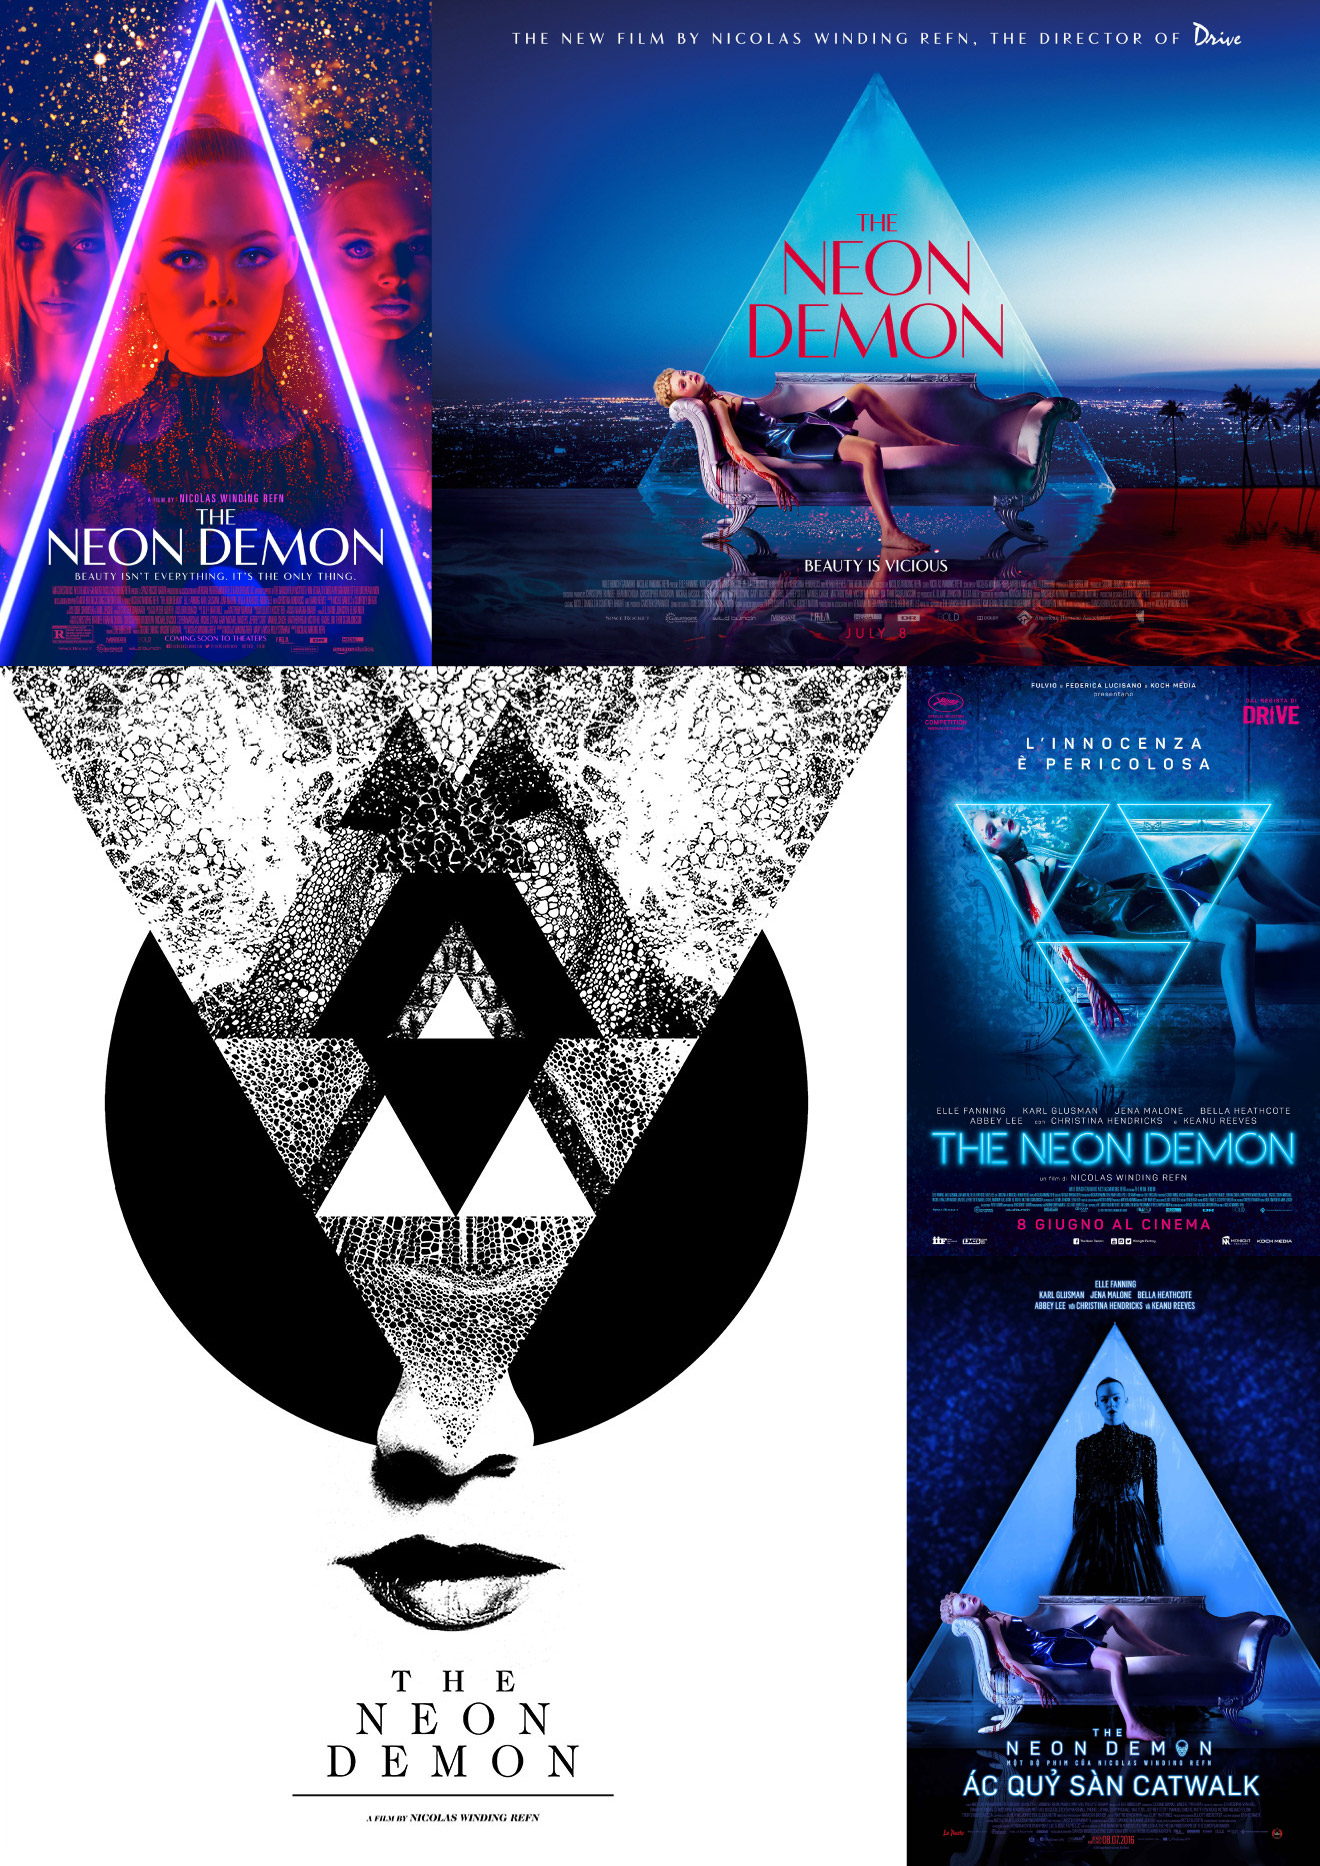 © 2016 Broad Green Pictures – Click the image to see the Mondo poster by Jay Shaw for The Neon Demon on Collider.